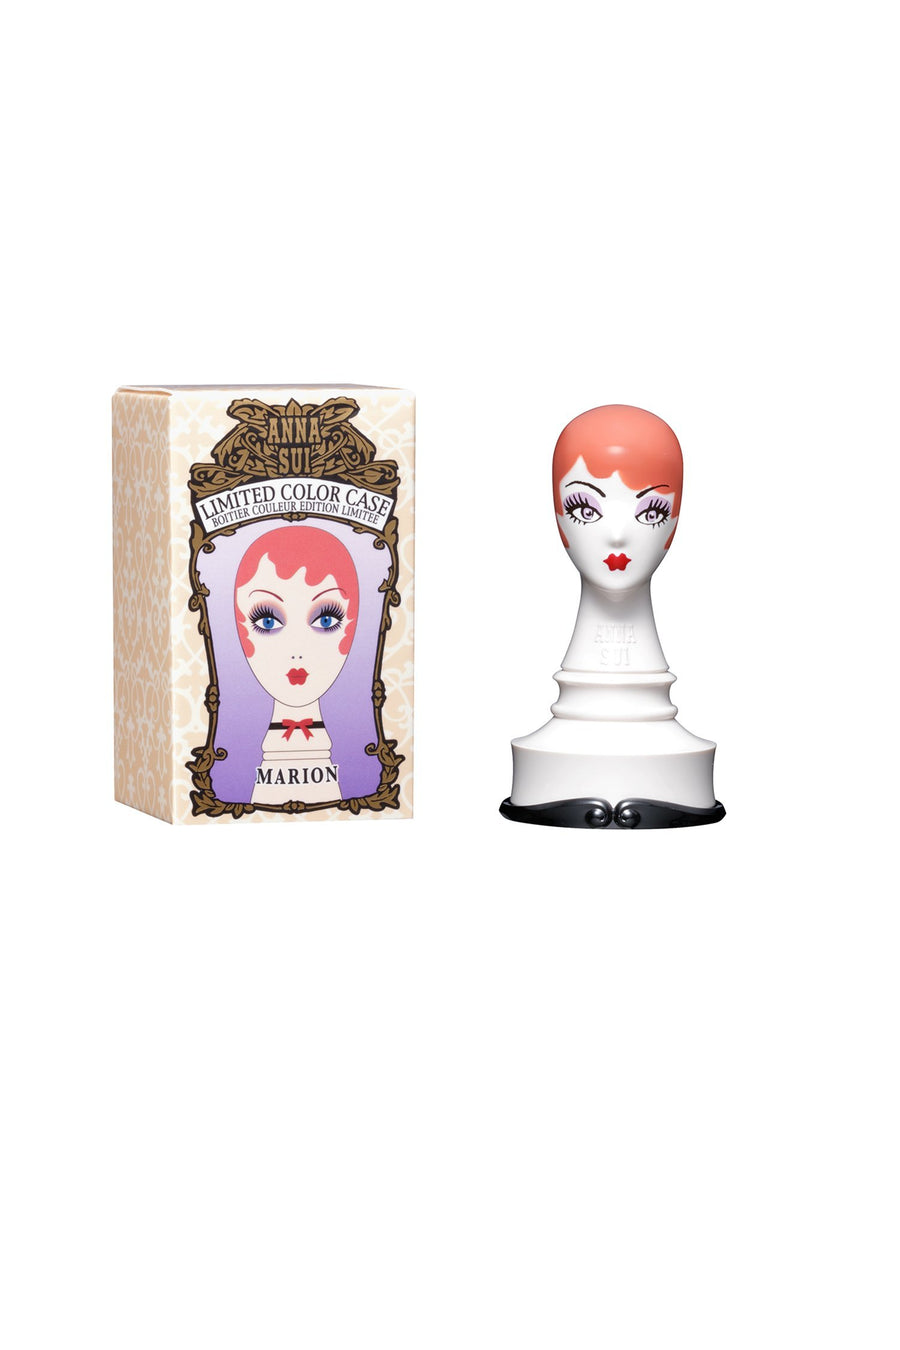 Anna Sui Limited Edition Dolly Head Color Case